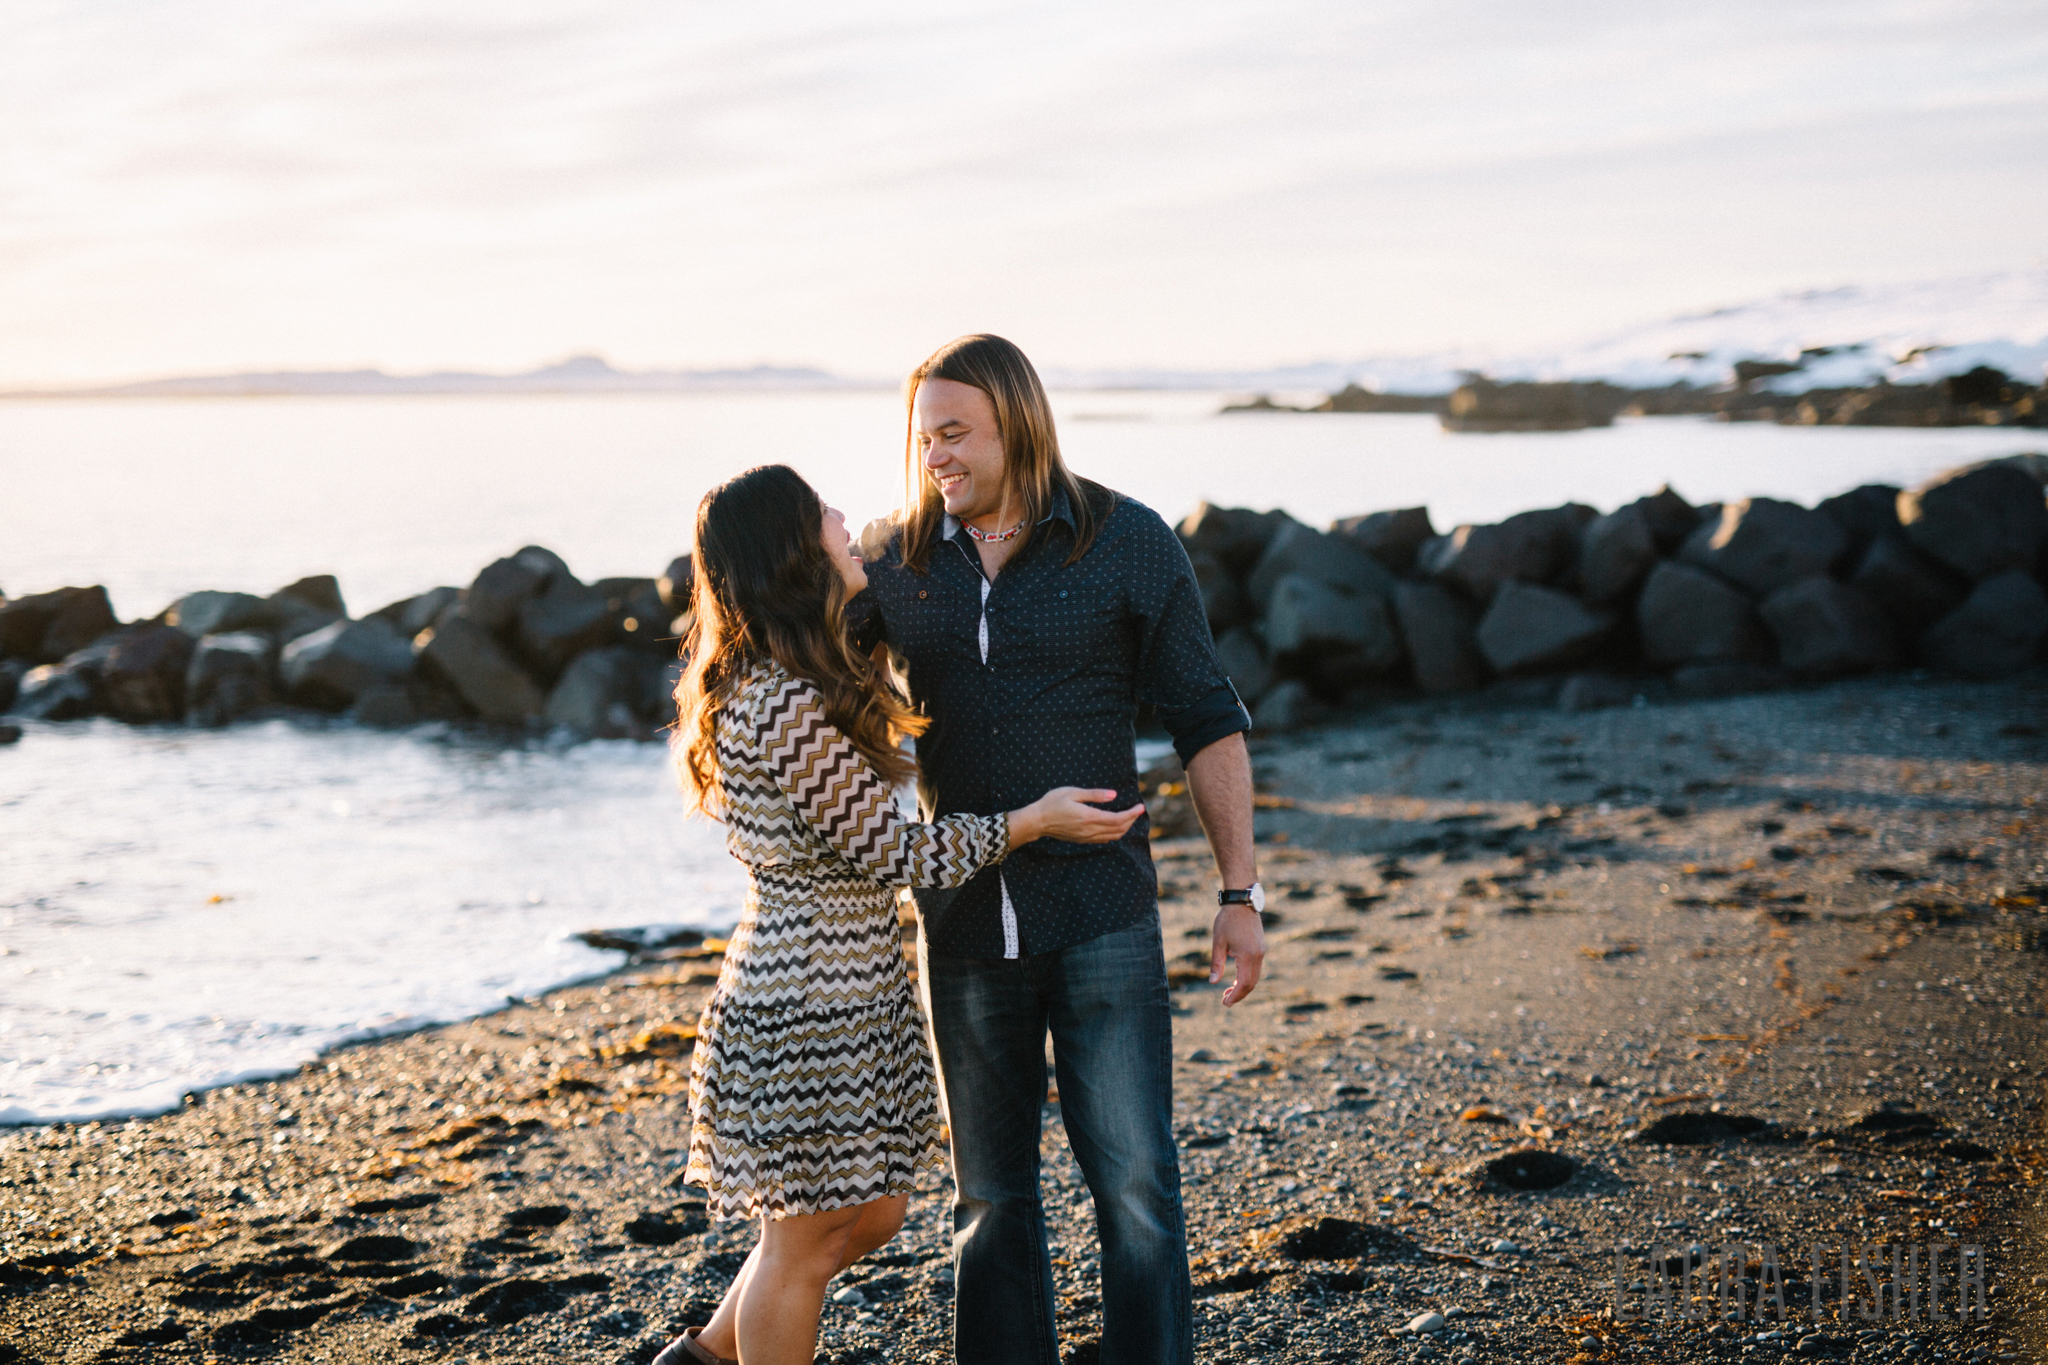 iceland-black-sand-beach-engagement-laura-fisher-photography-0030-2.jpg